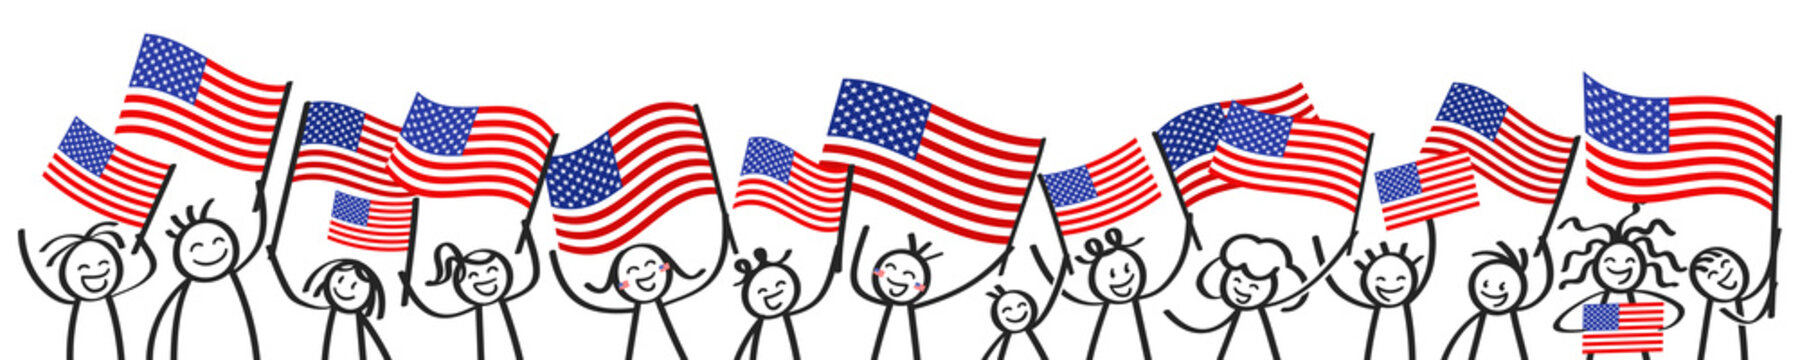 Cheering crowd of happy stick figures with American national flags, USA supporters smiling and waving star-spangled banner isolated on white background